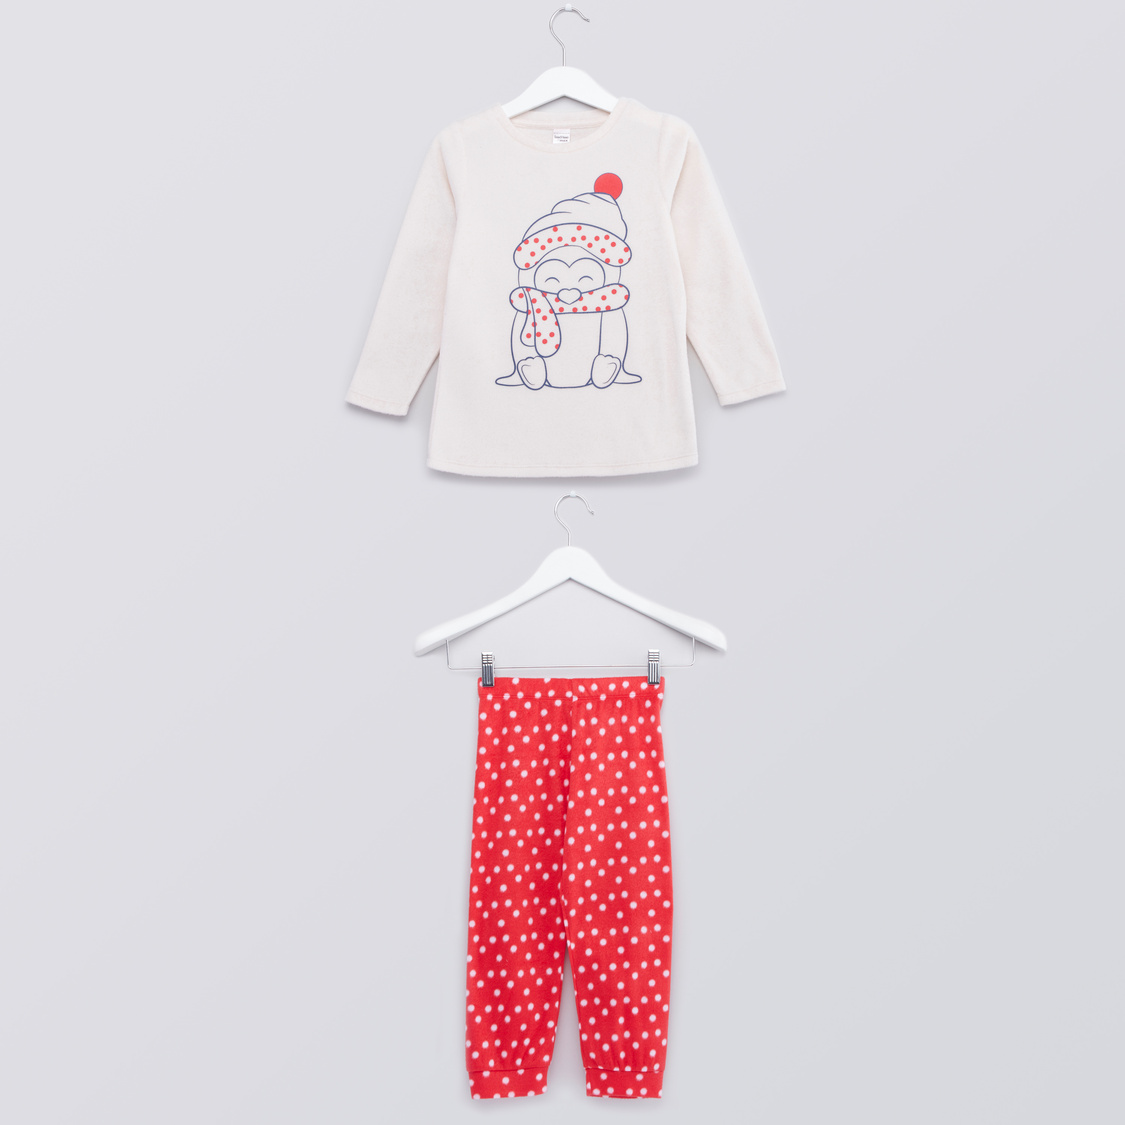 Cozy Collection Printed T-shirt and Full Length Jog Pants Set